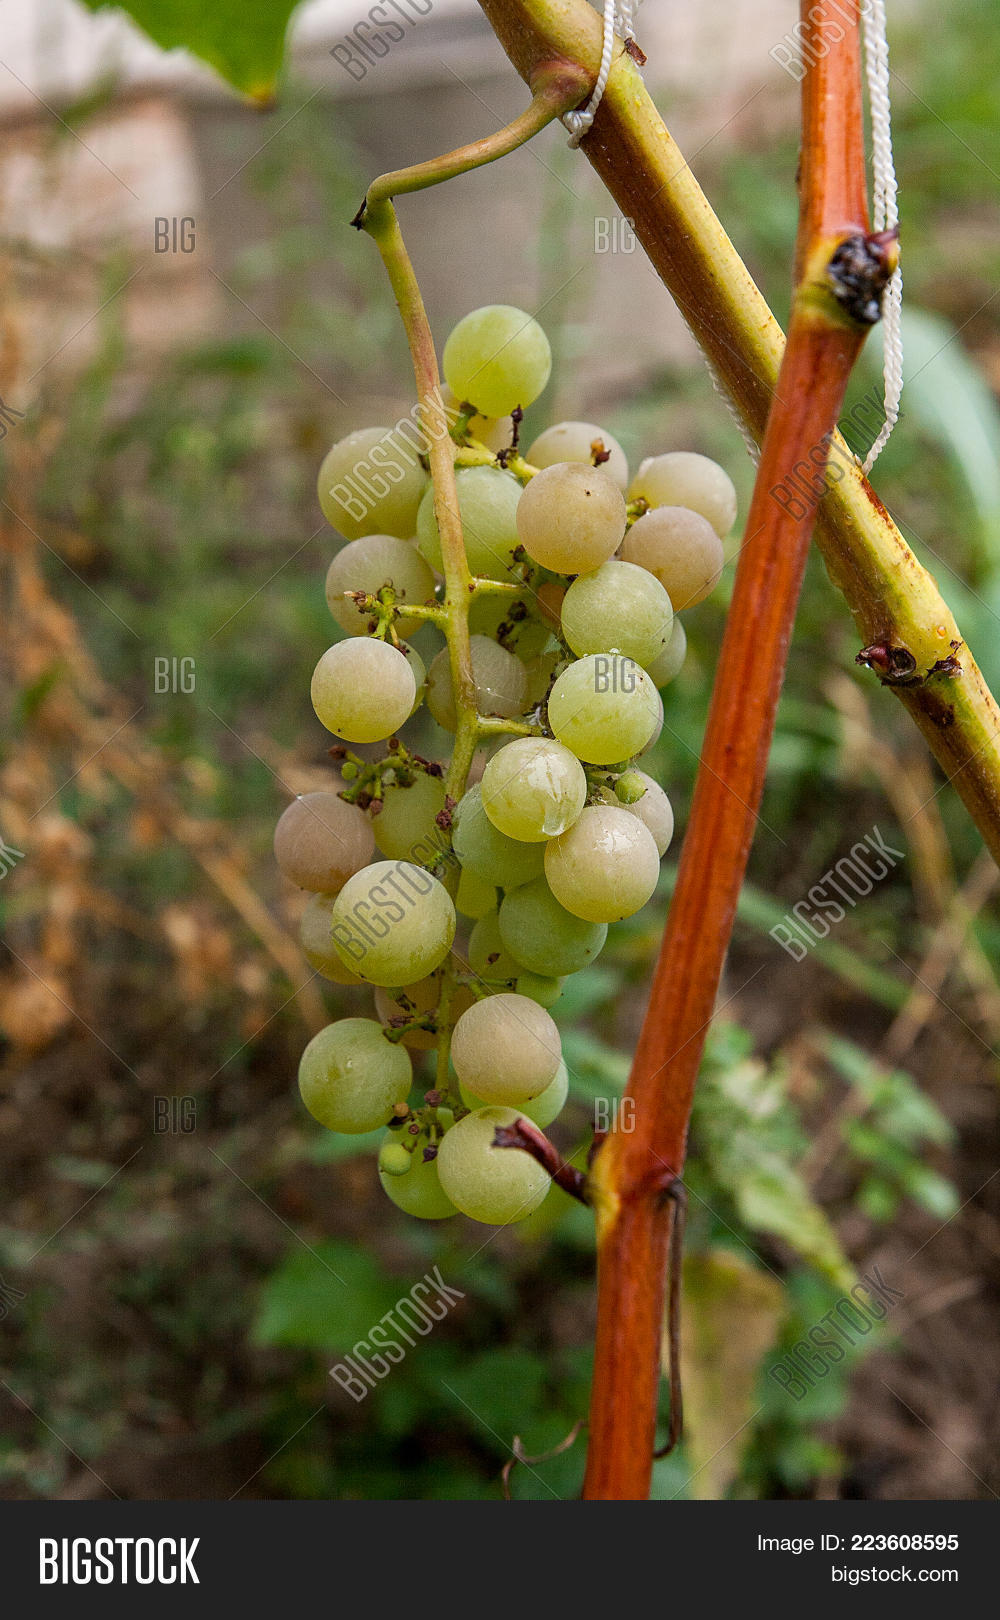 Bunch Green Grapes Image & Photo (Free Trial) | Bigstock